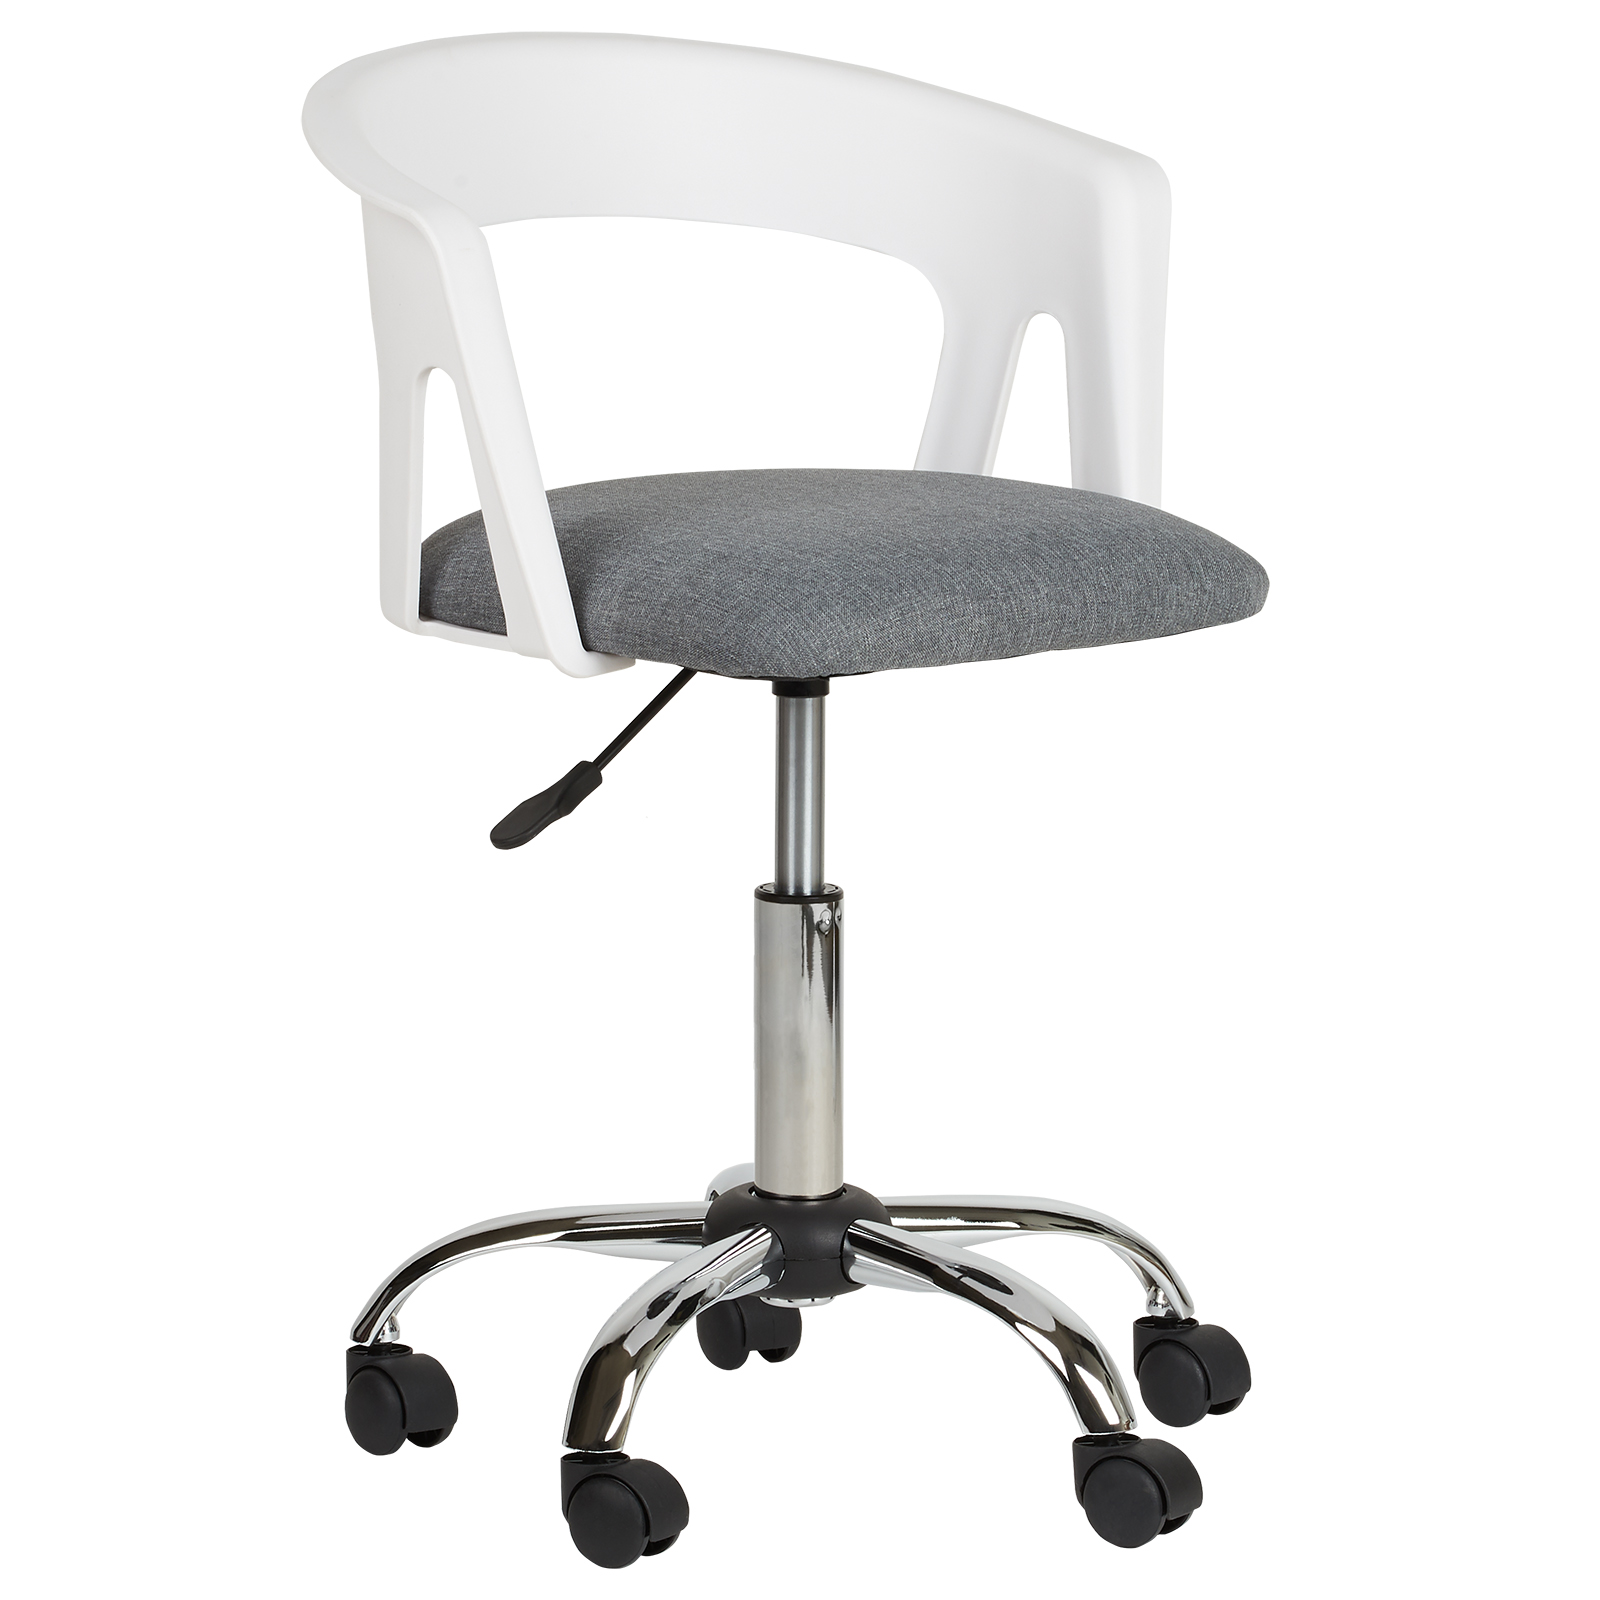 Brilliant Details About Hartleys White Grey Fabric Adjustable Swivel Computer Pc Office Desk Chair Ibusinesslaw Wood Chair Design Ideas Ibusinesslaworg